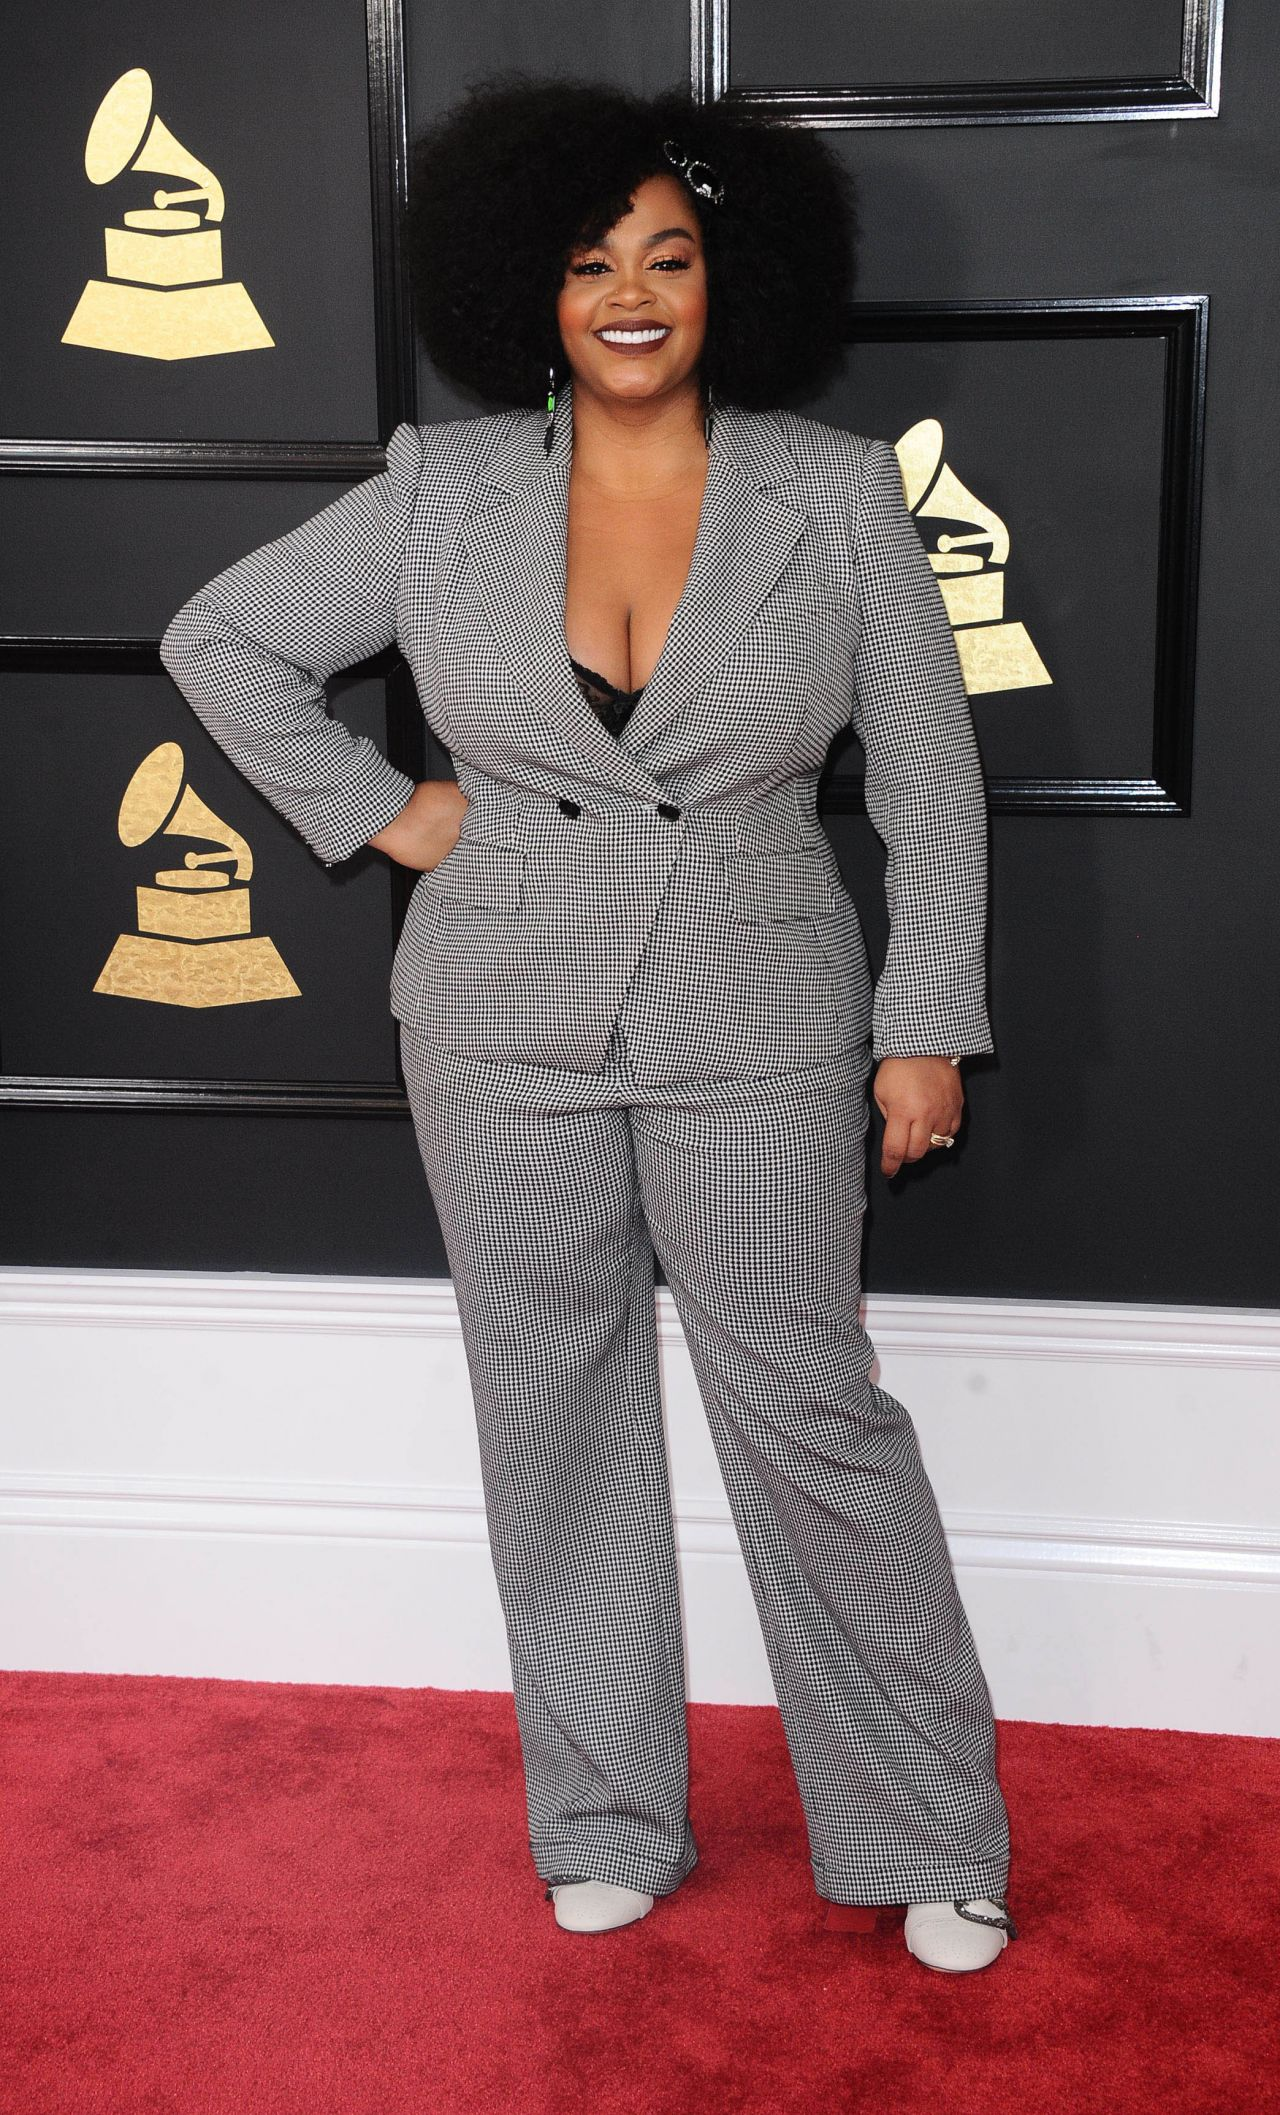 Jill Scott Jill Scott new picture